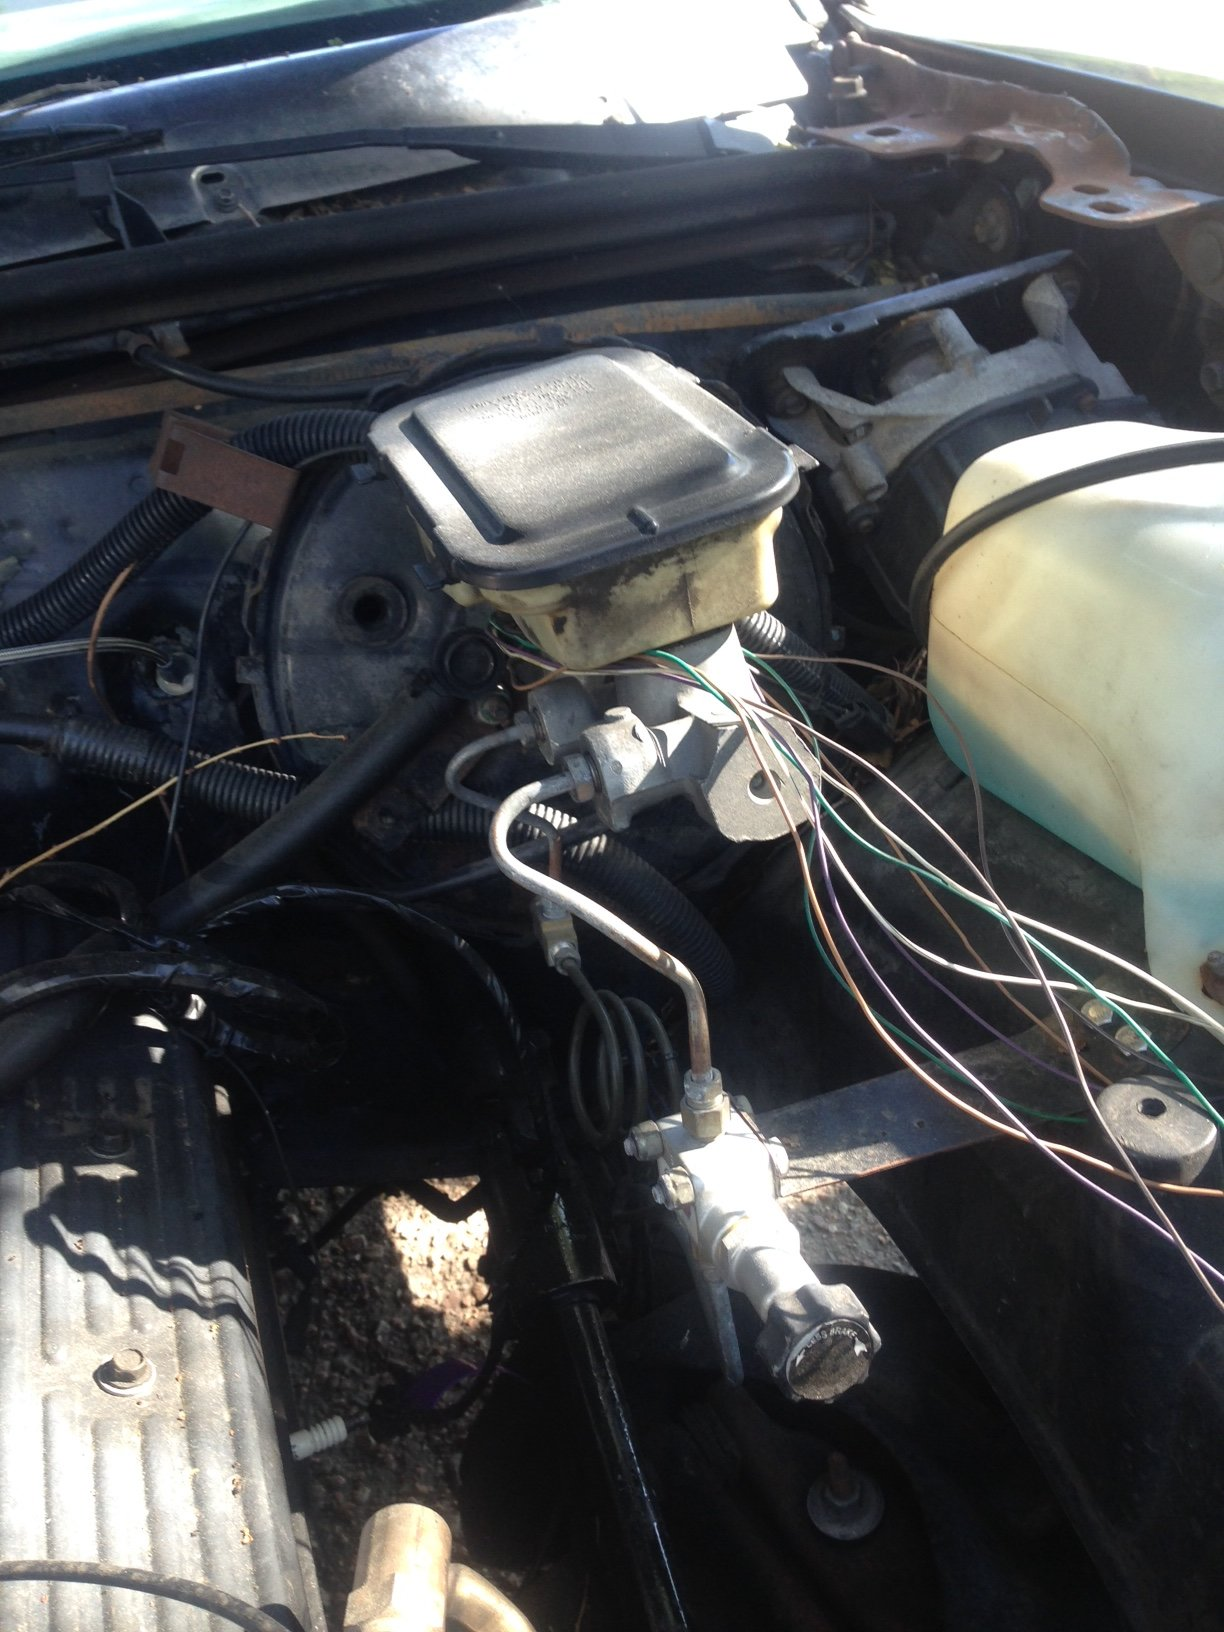 Disk/Disk Master Cylinder Discussion - GBodyForum - '78-'88